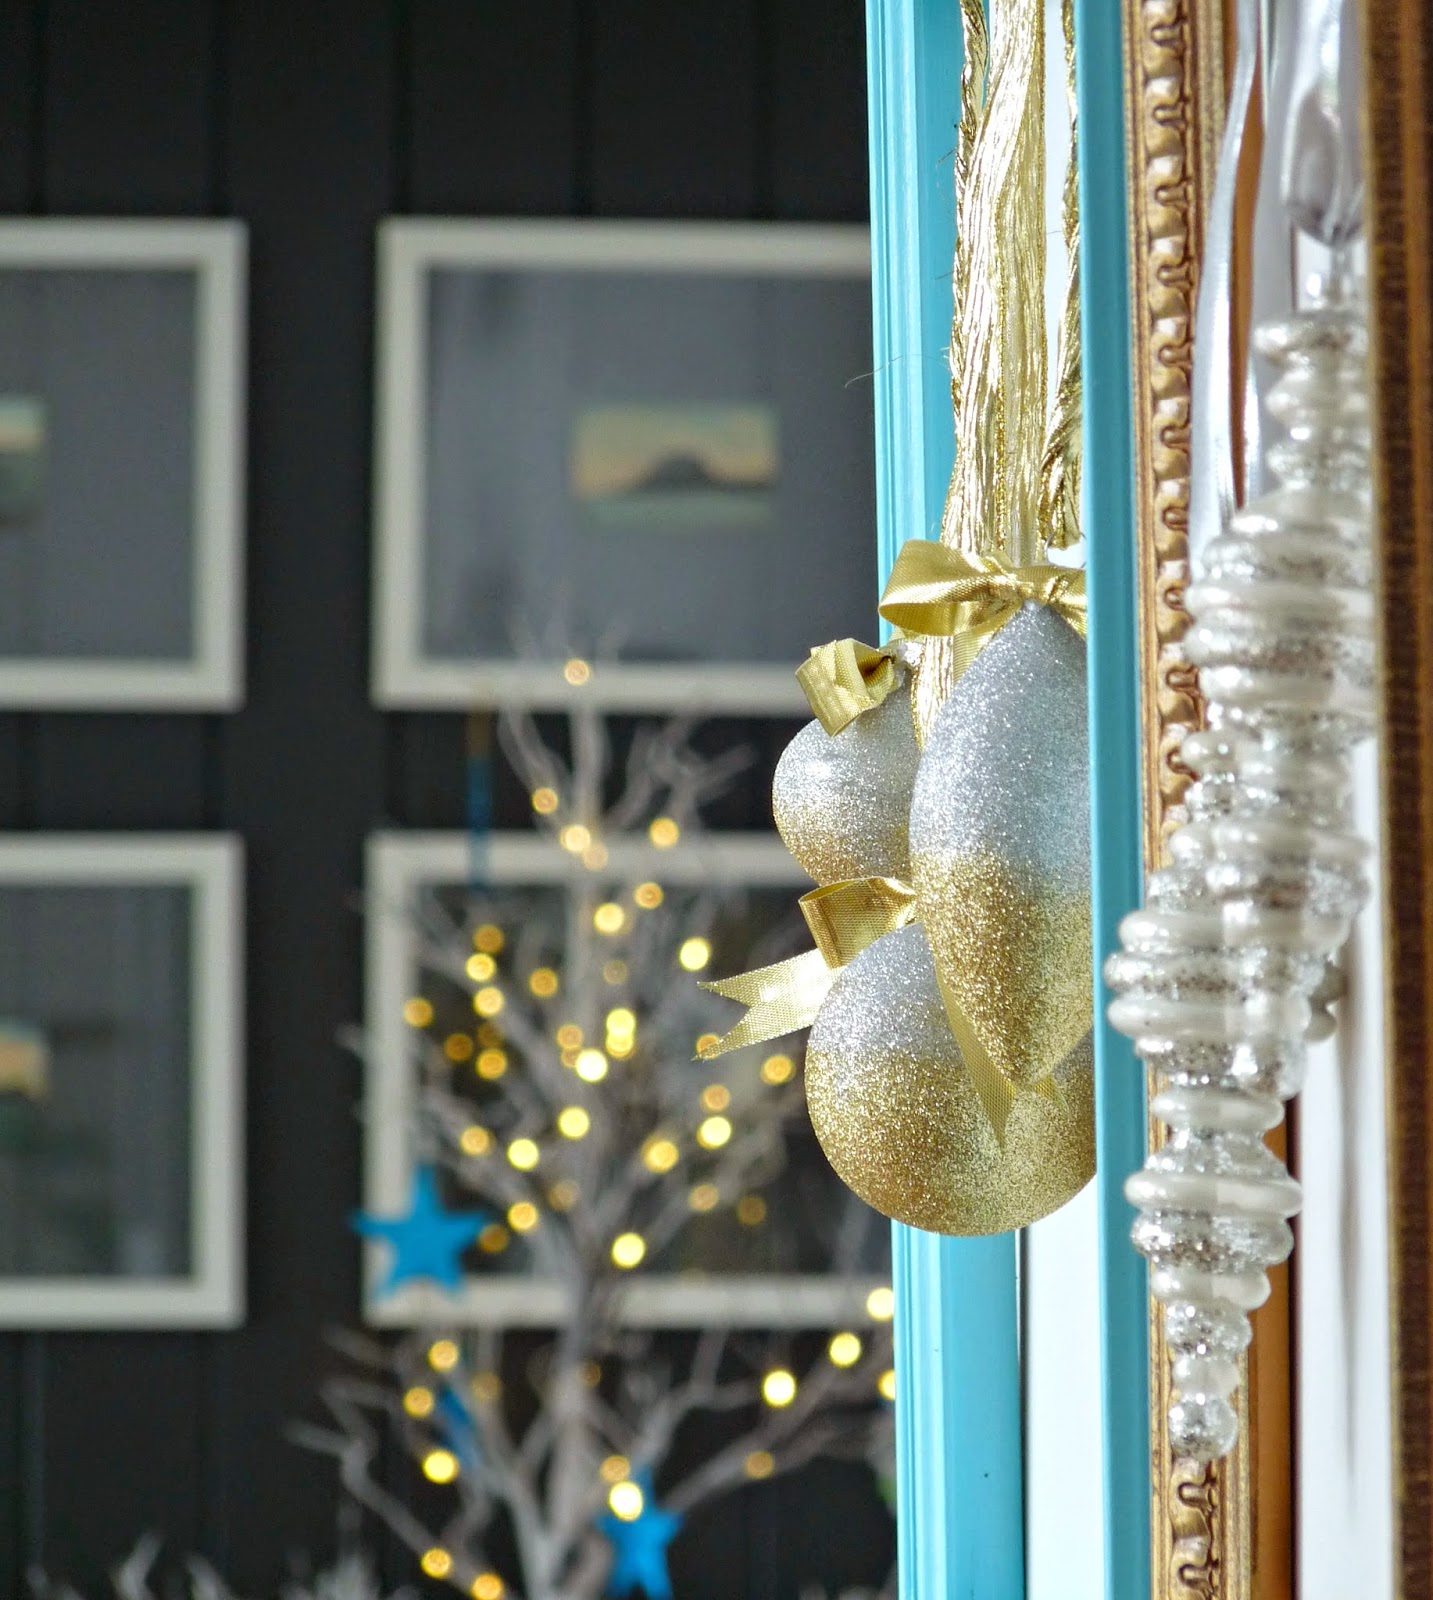 How to frame Christmas ornaments